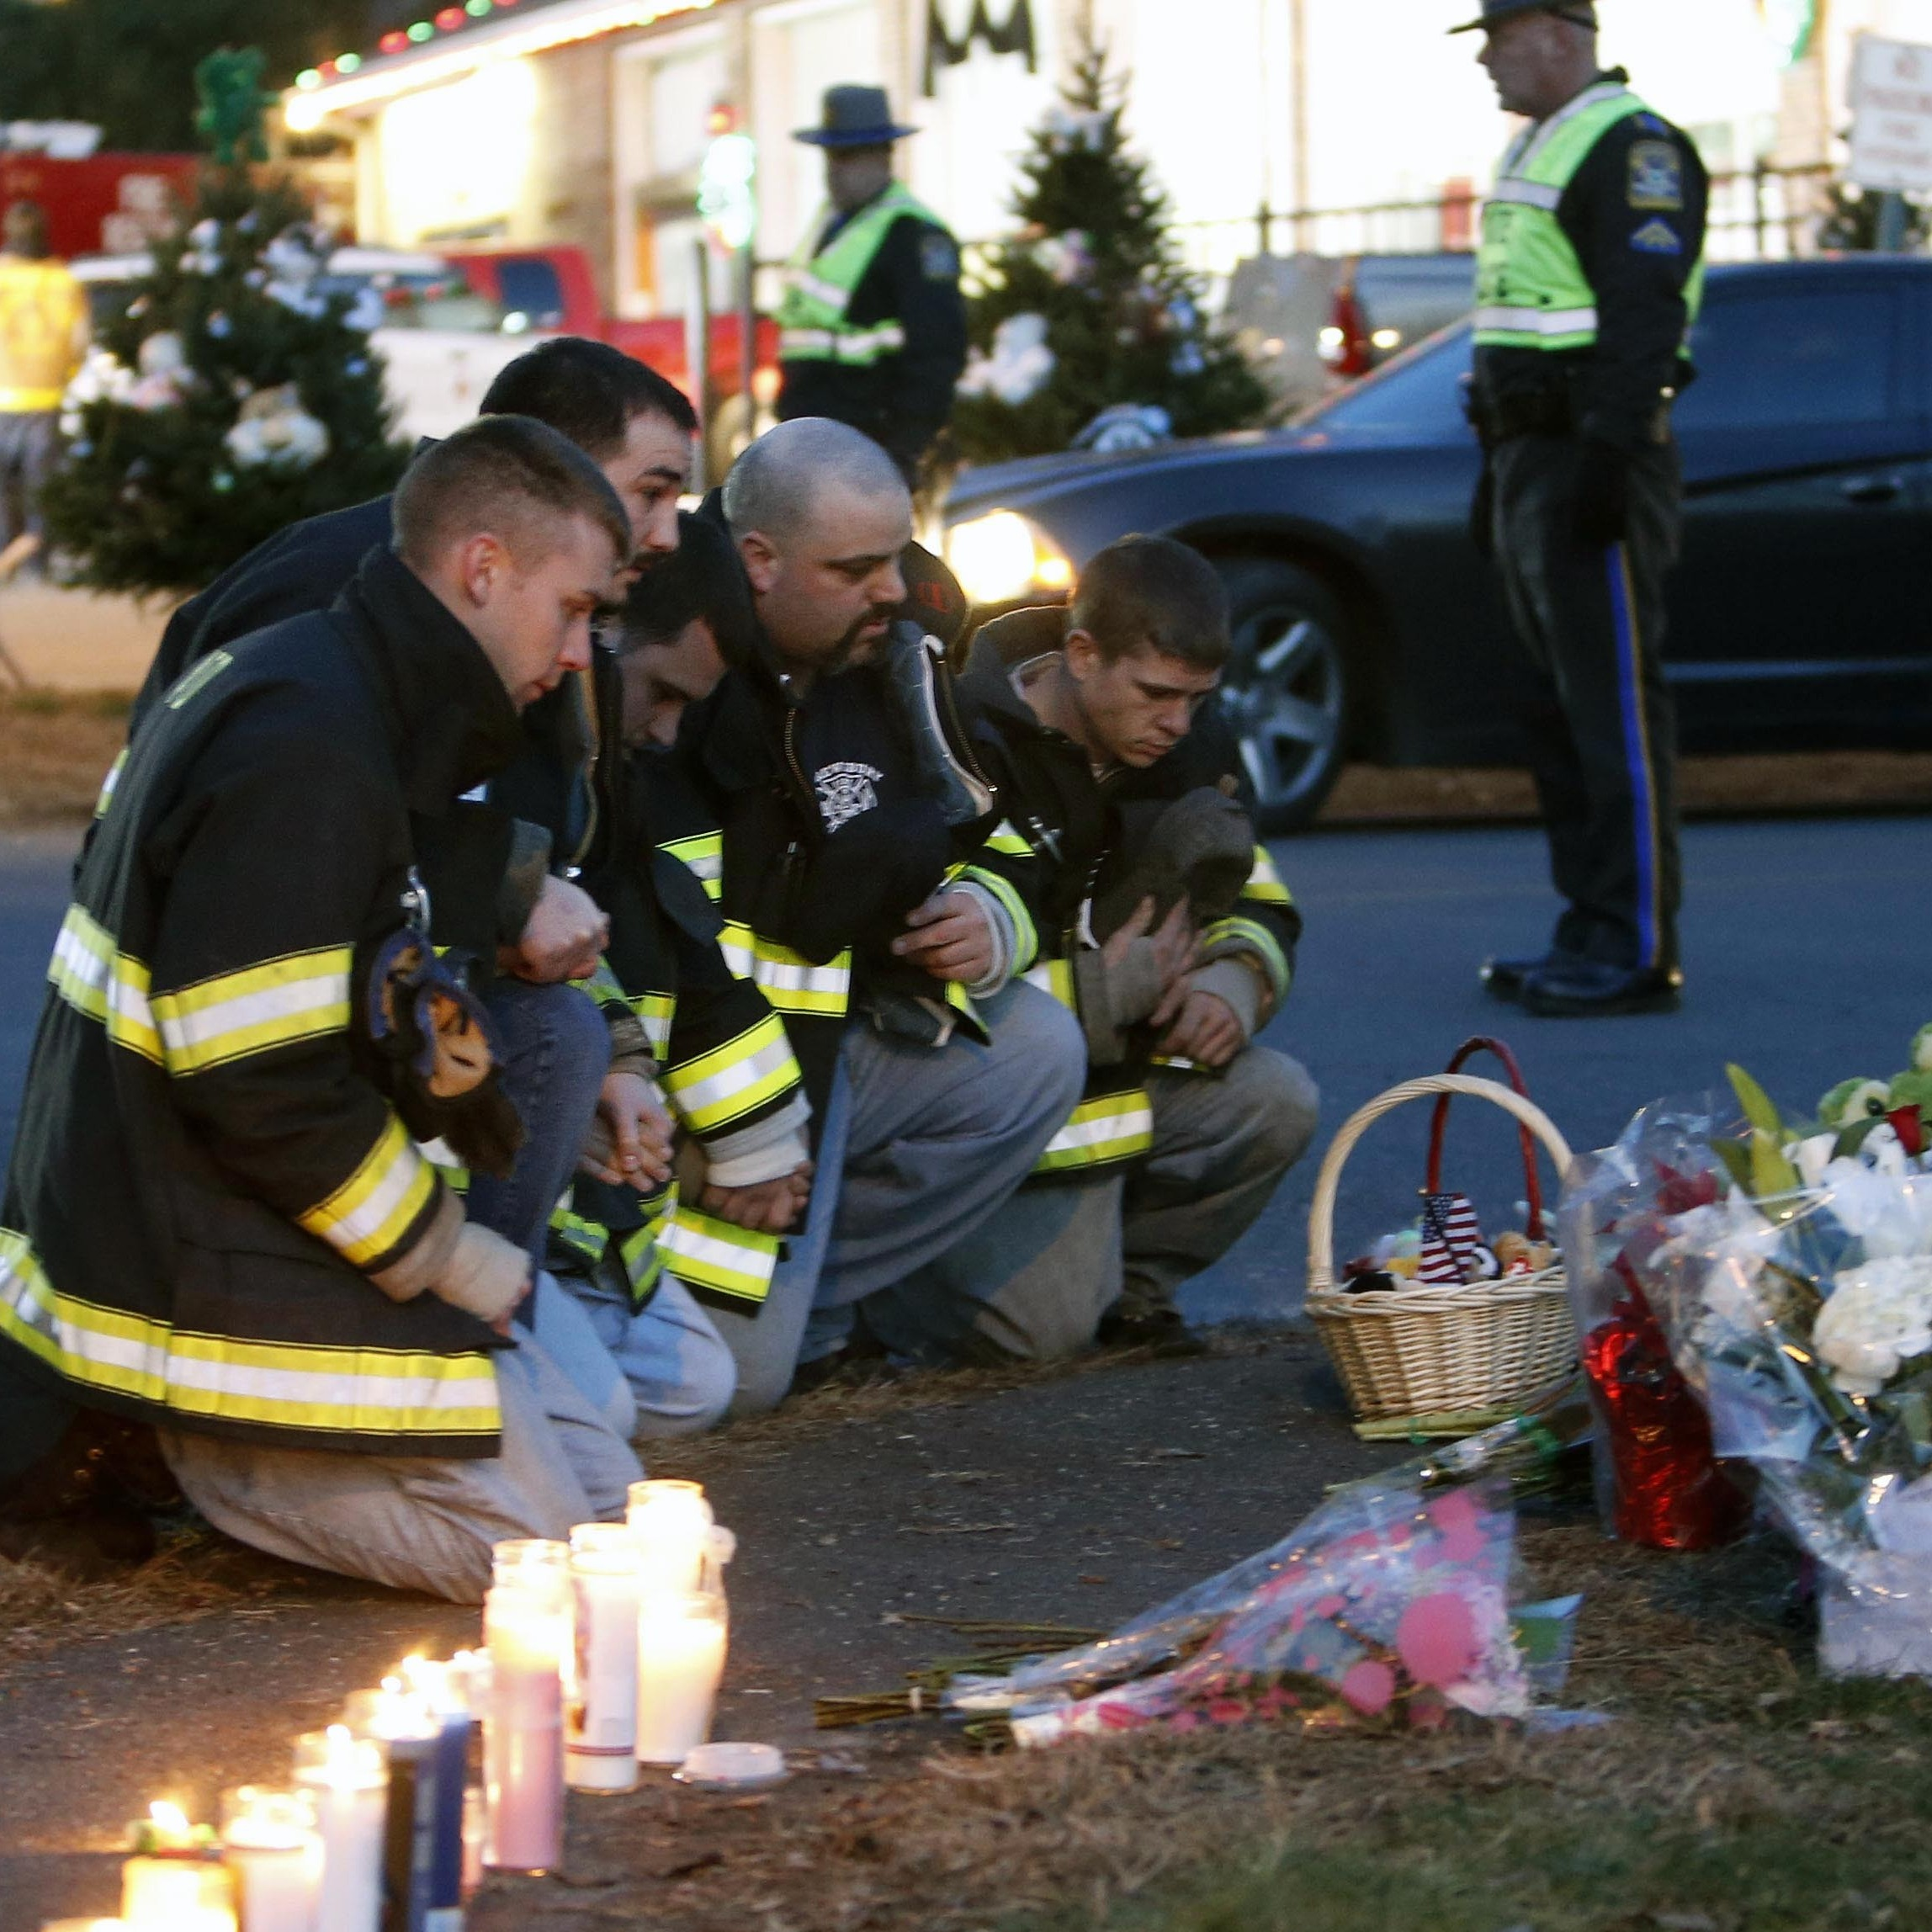 Firefighters pay their respects at a memorial for shooting victims near Sandy Hook Elementary School on Saturday.